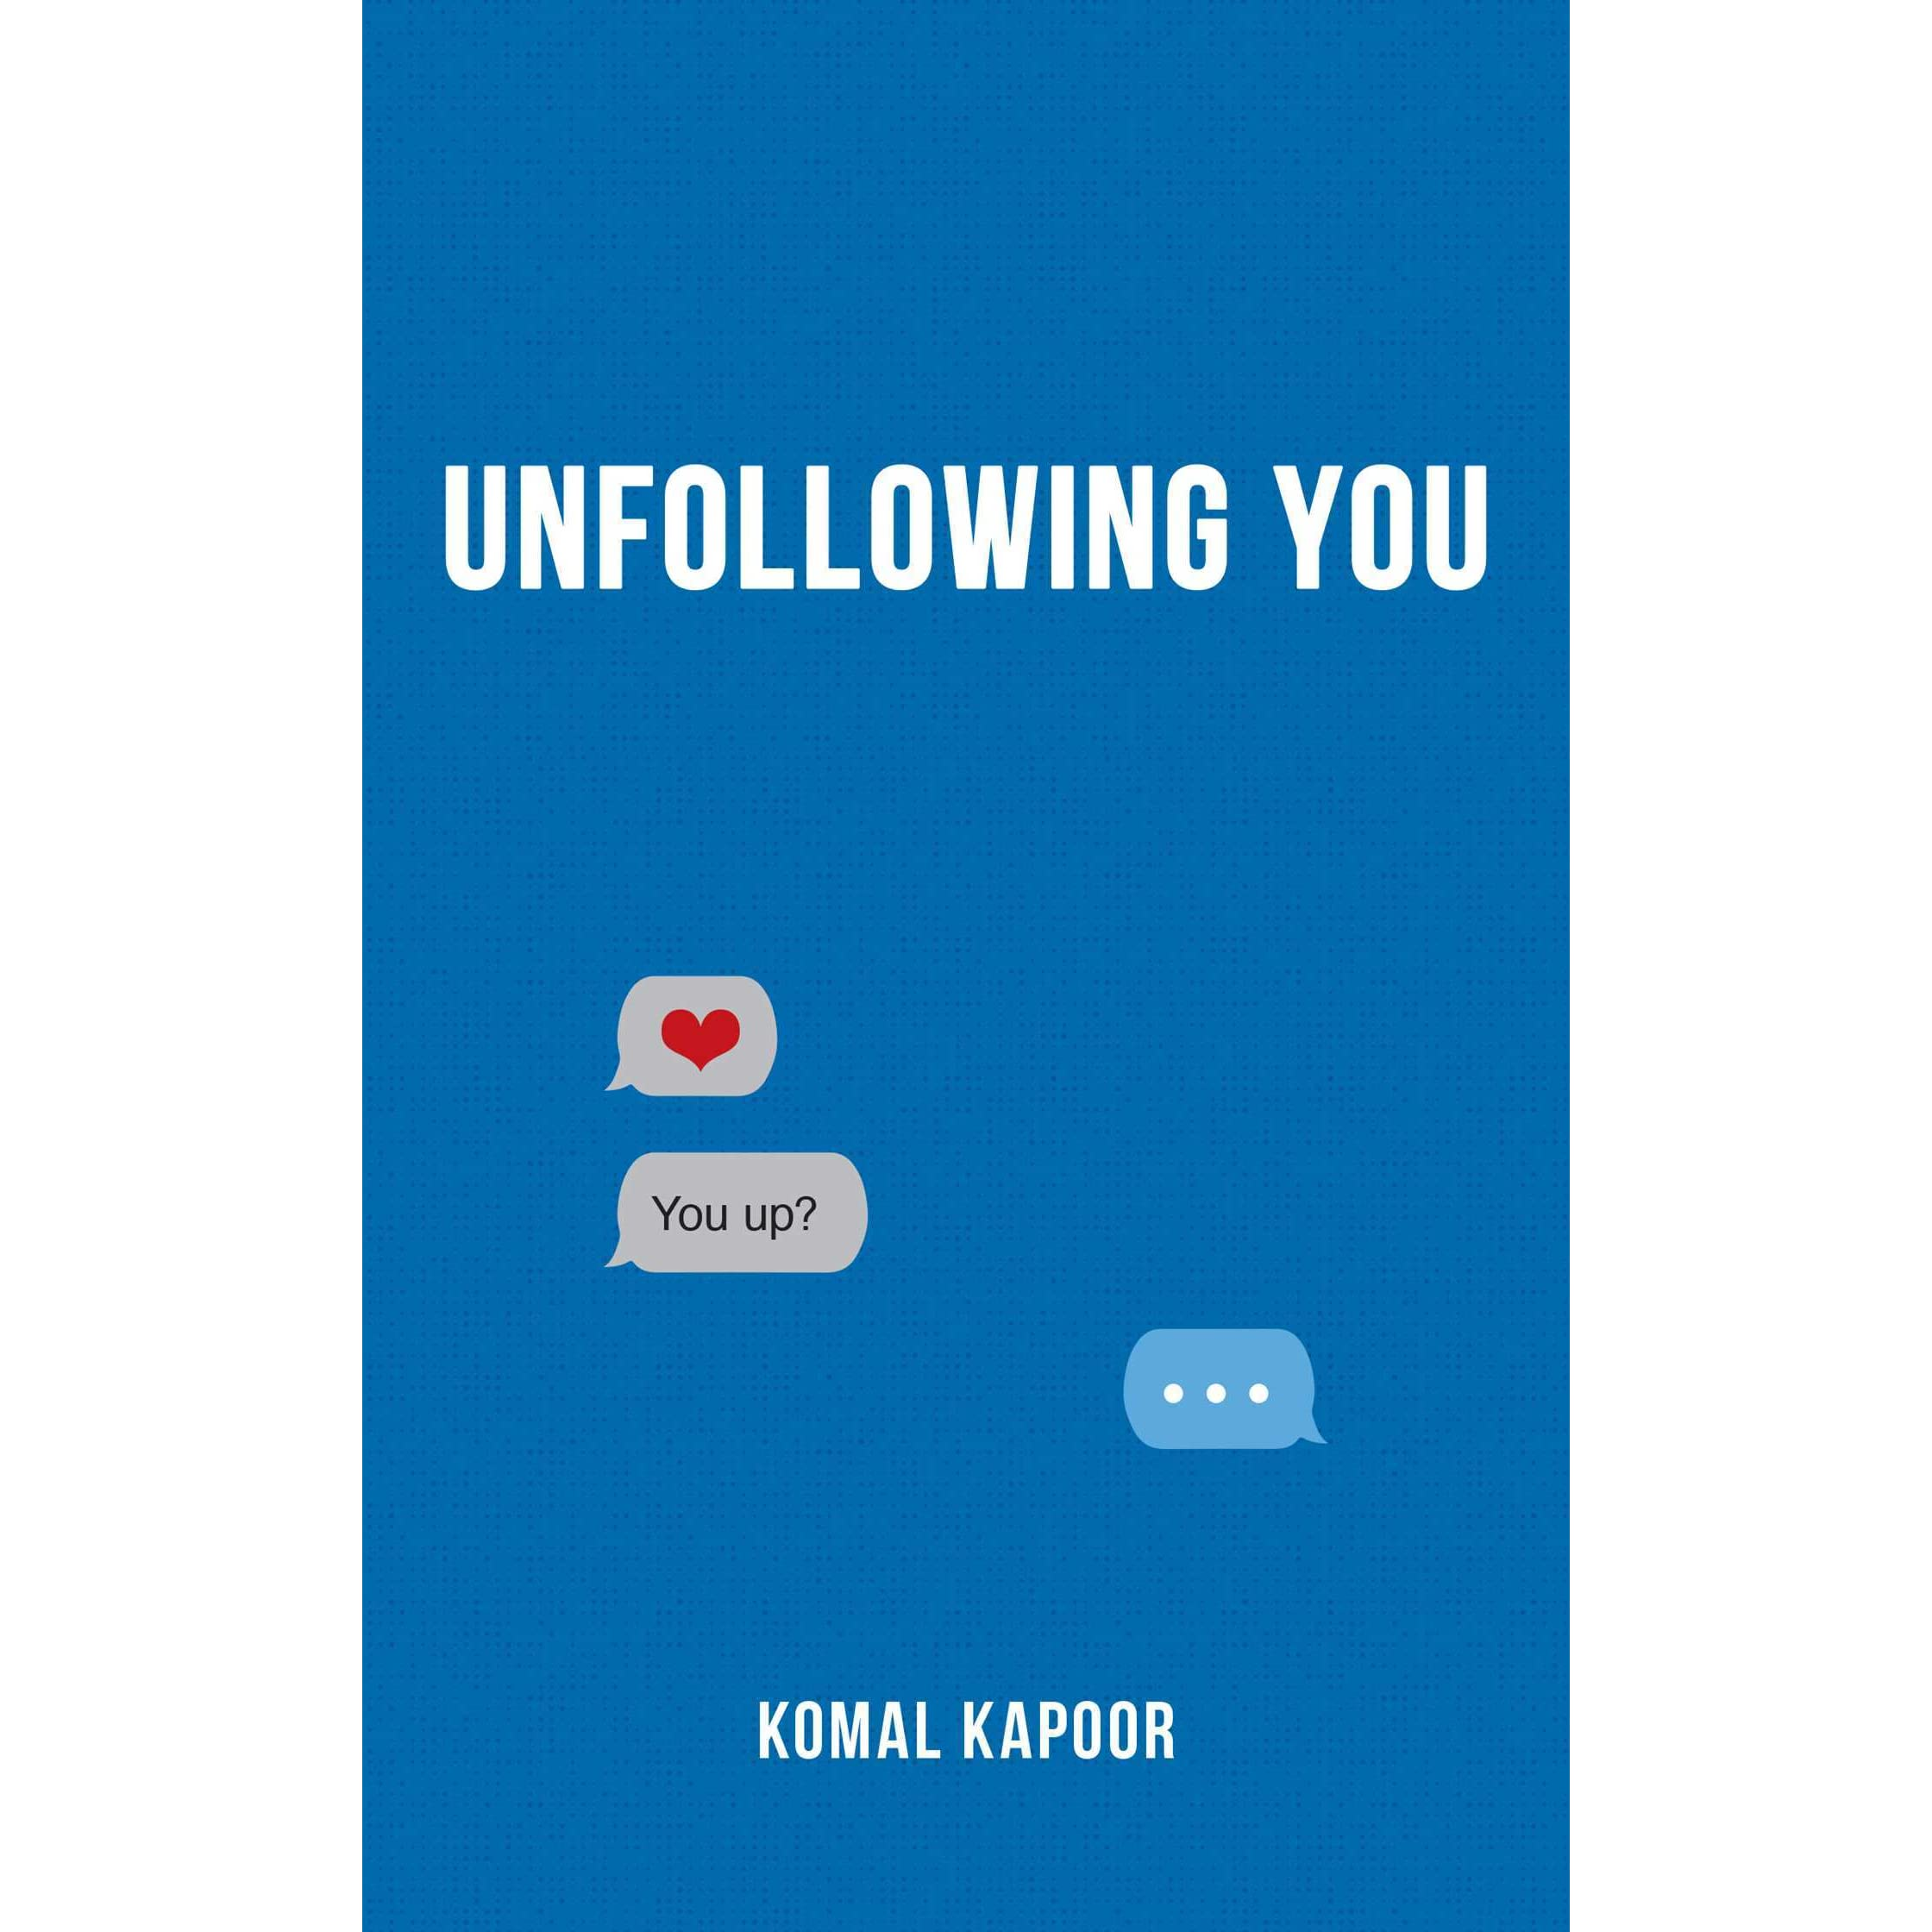 Unfollowing You by Komal Kapoor